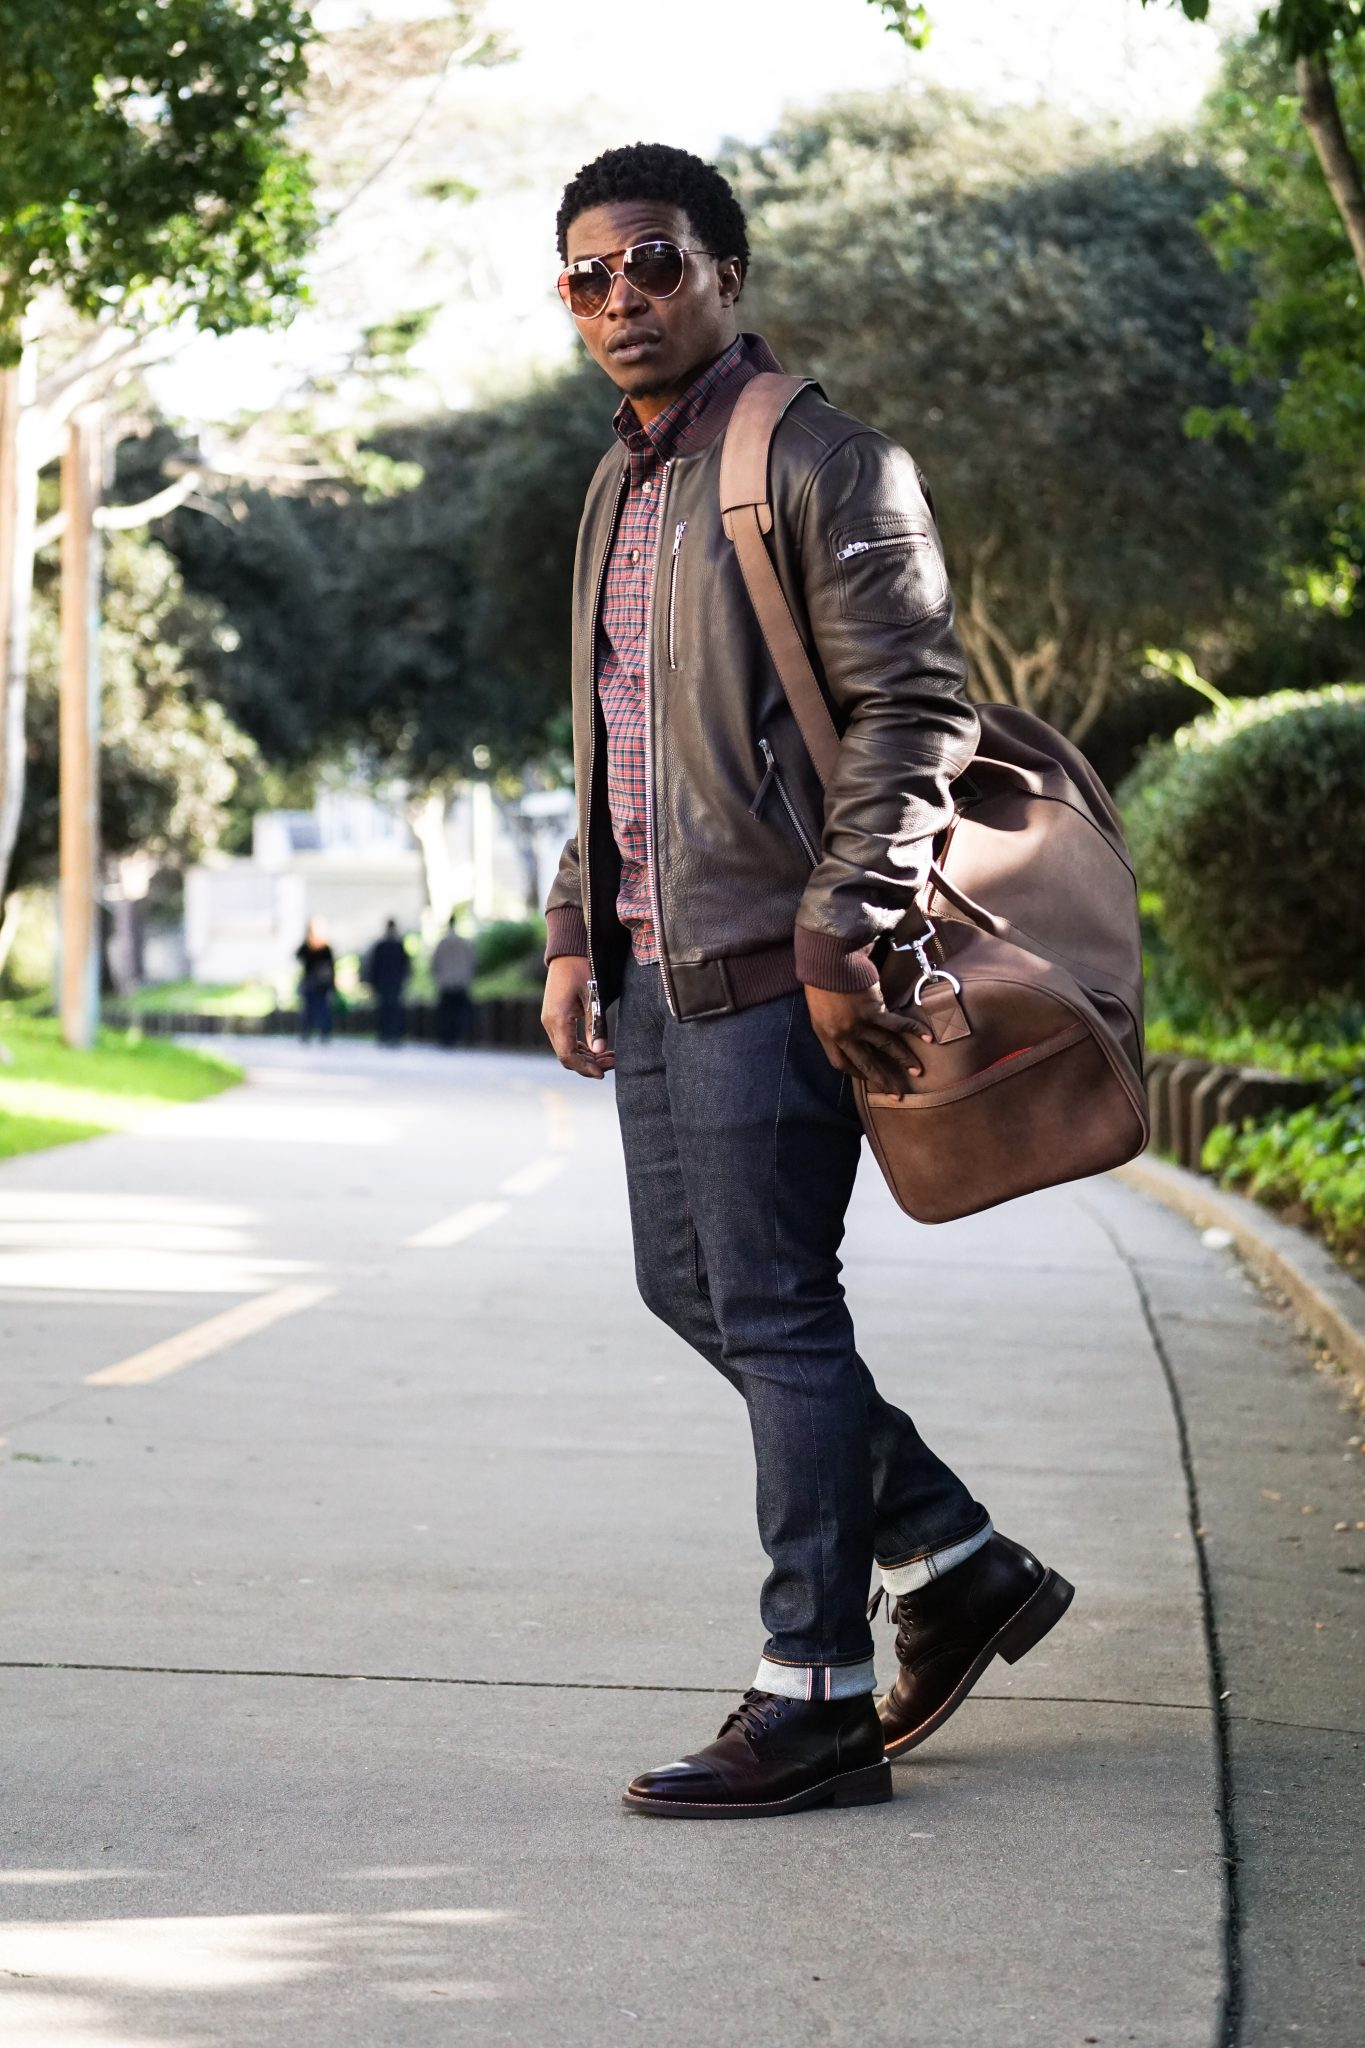 dapper-advisor-black-man-wearing-brown-leather-bomber-jacket-holding-brown-leather duffle bag-3